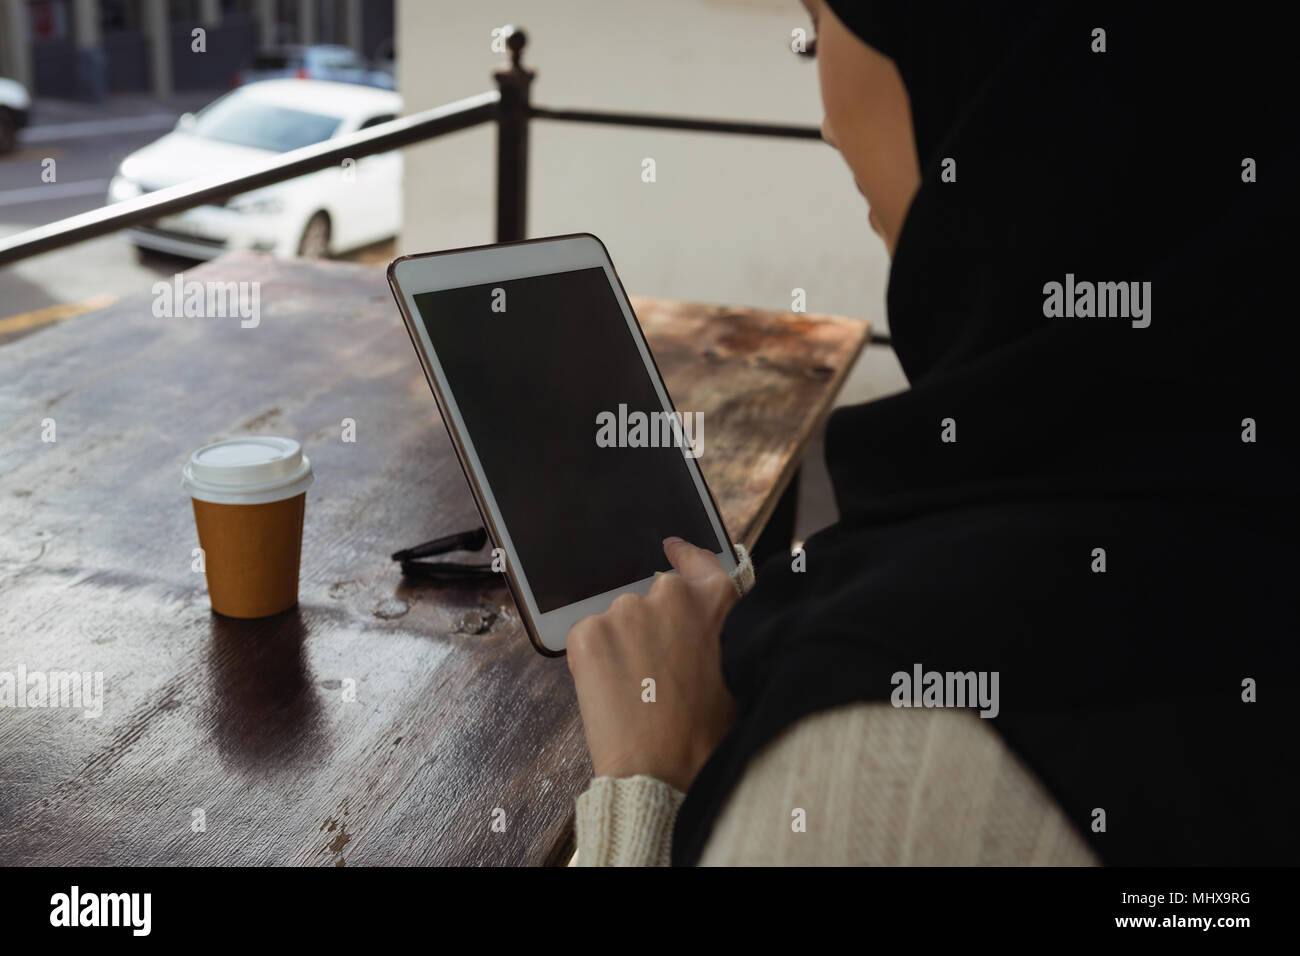 Hijab woman using digital tablet in cafe Banque D'Images